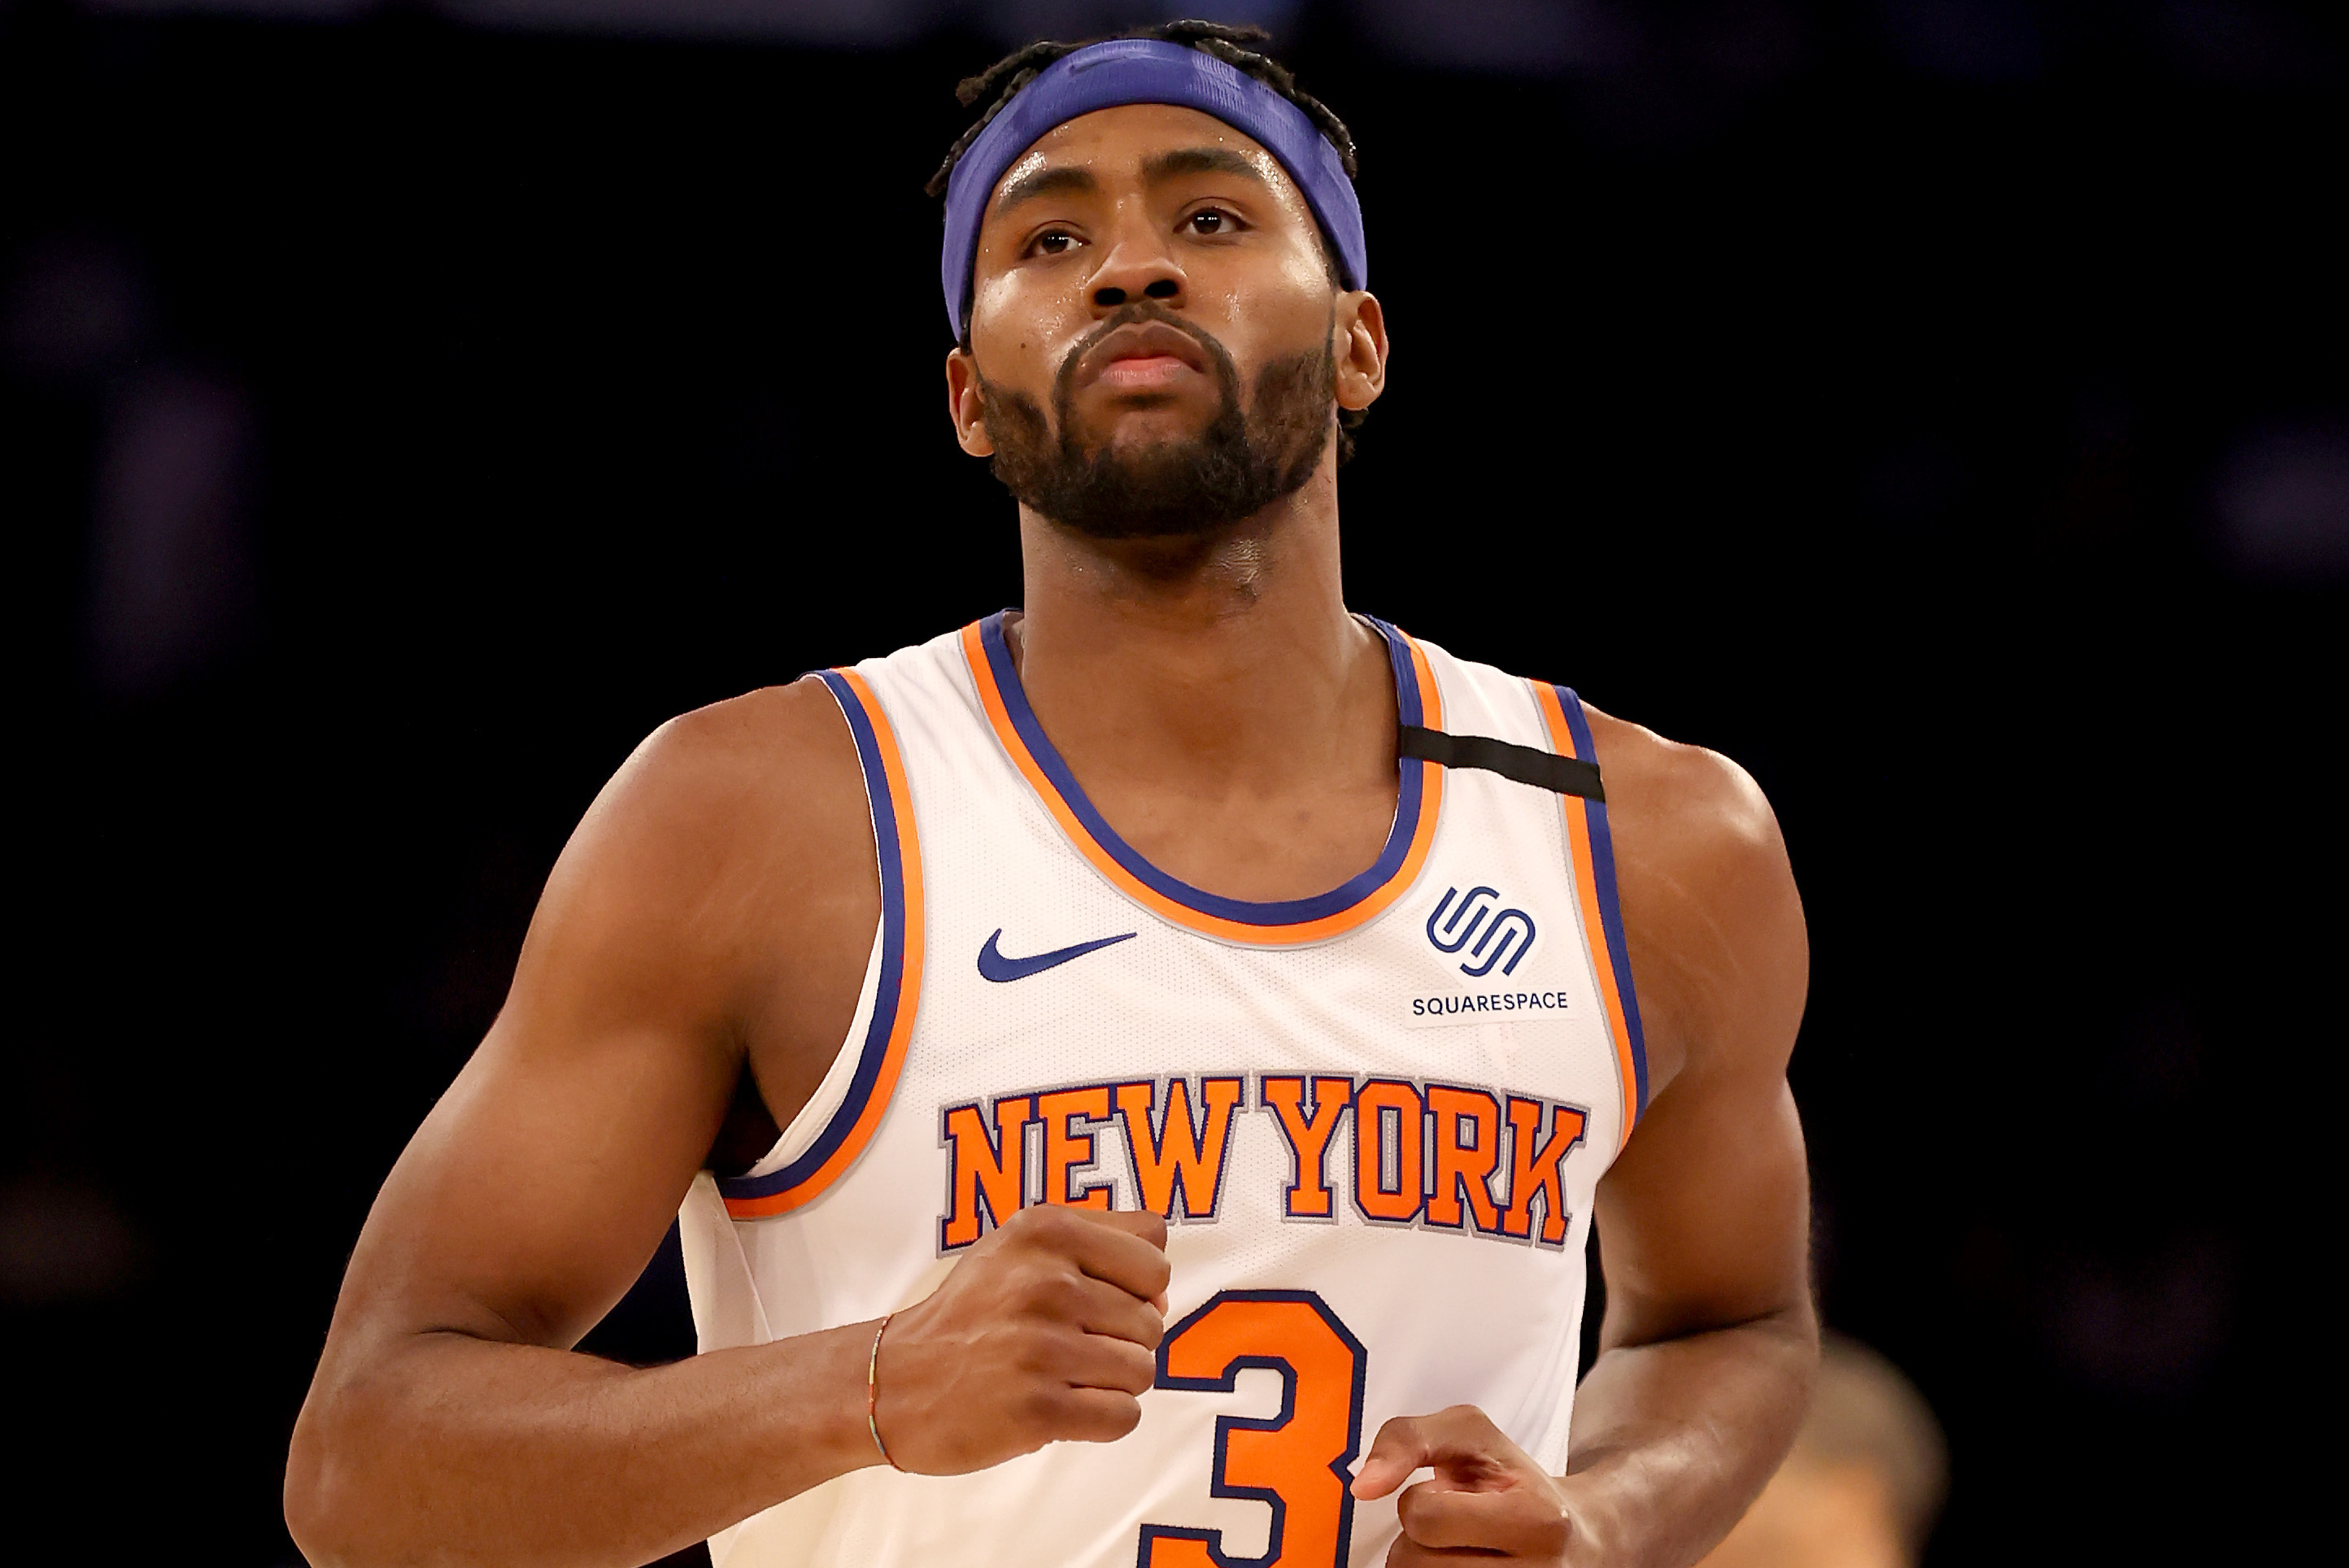 Lakers Rumors: Moe Harkless Drawing Interest If Knicks Buy Out ...